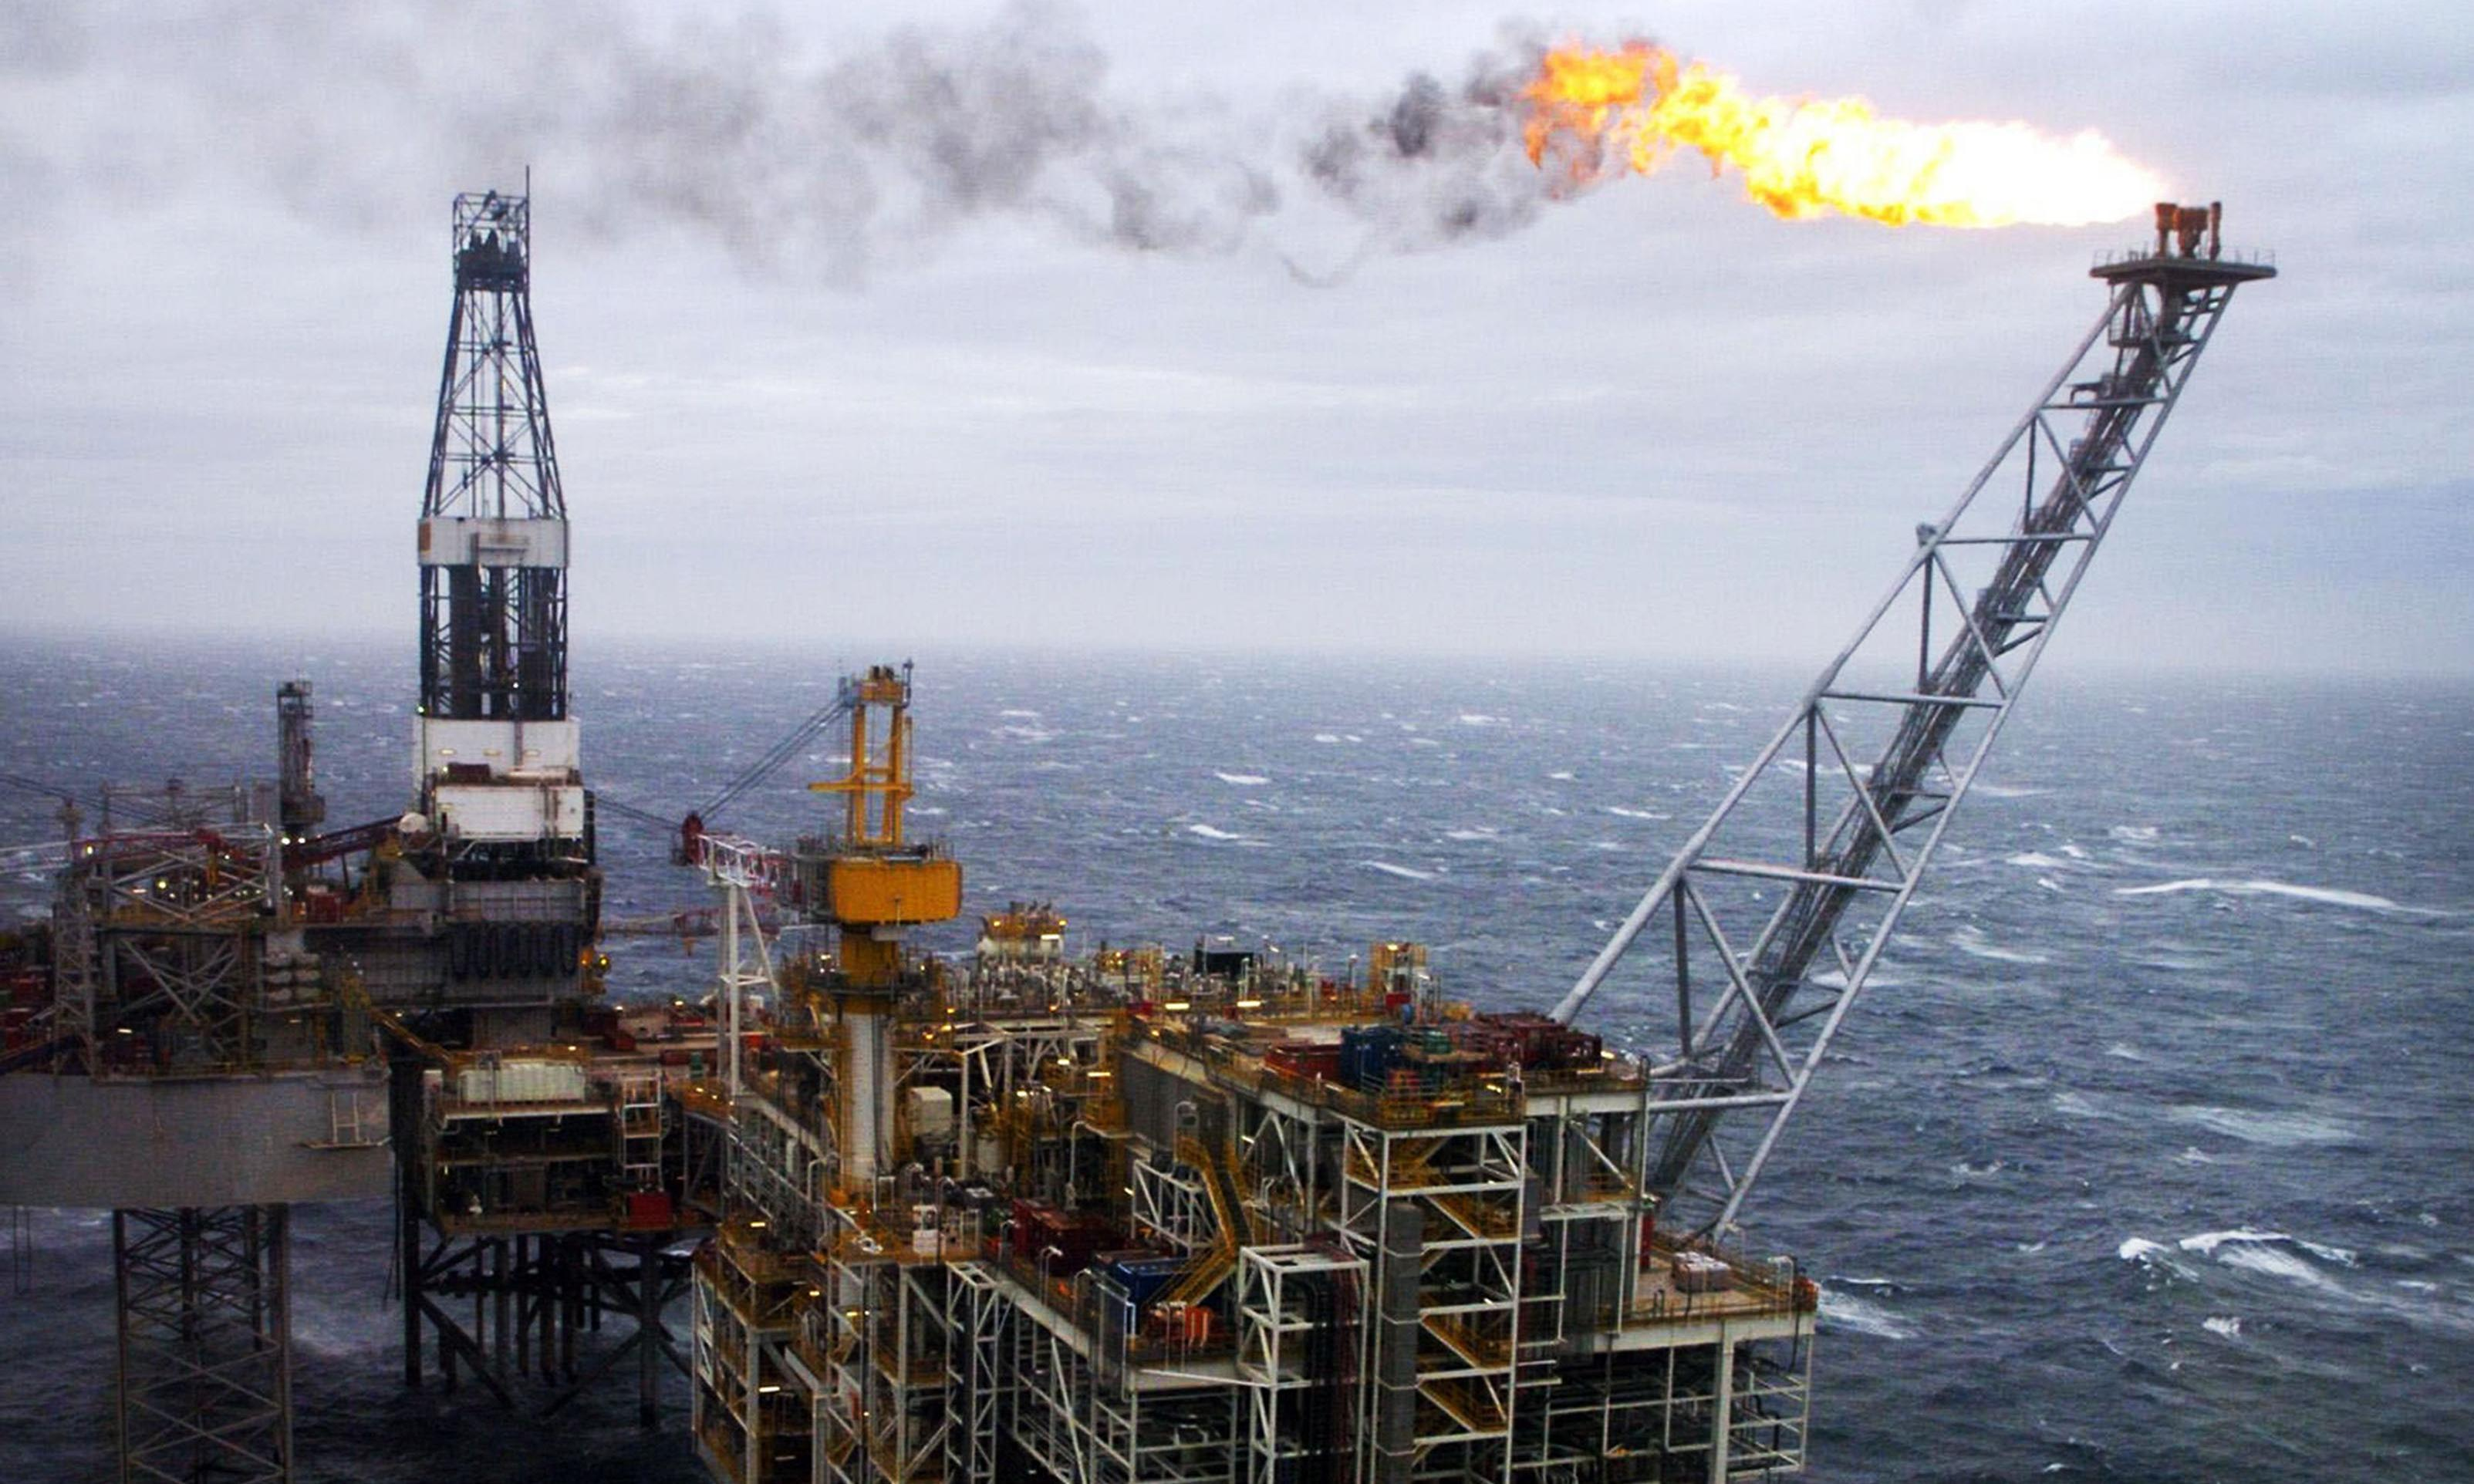 Maersk Oil's Culzean gasfield given go-ahead